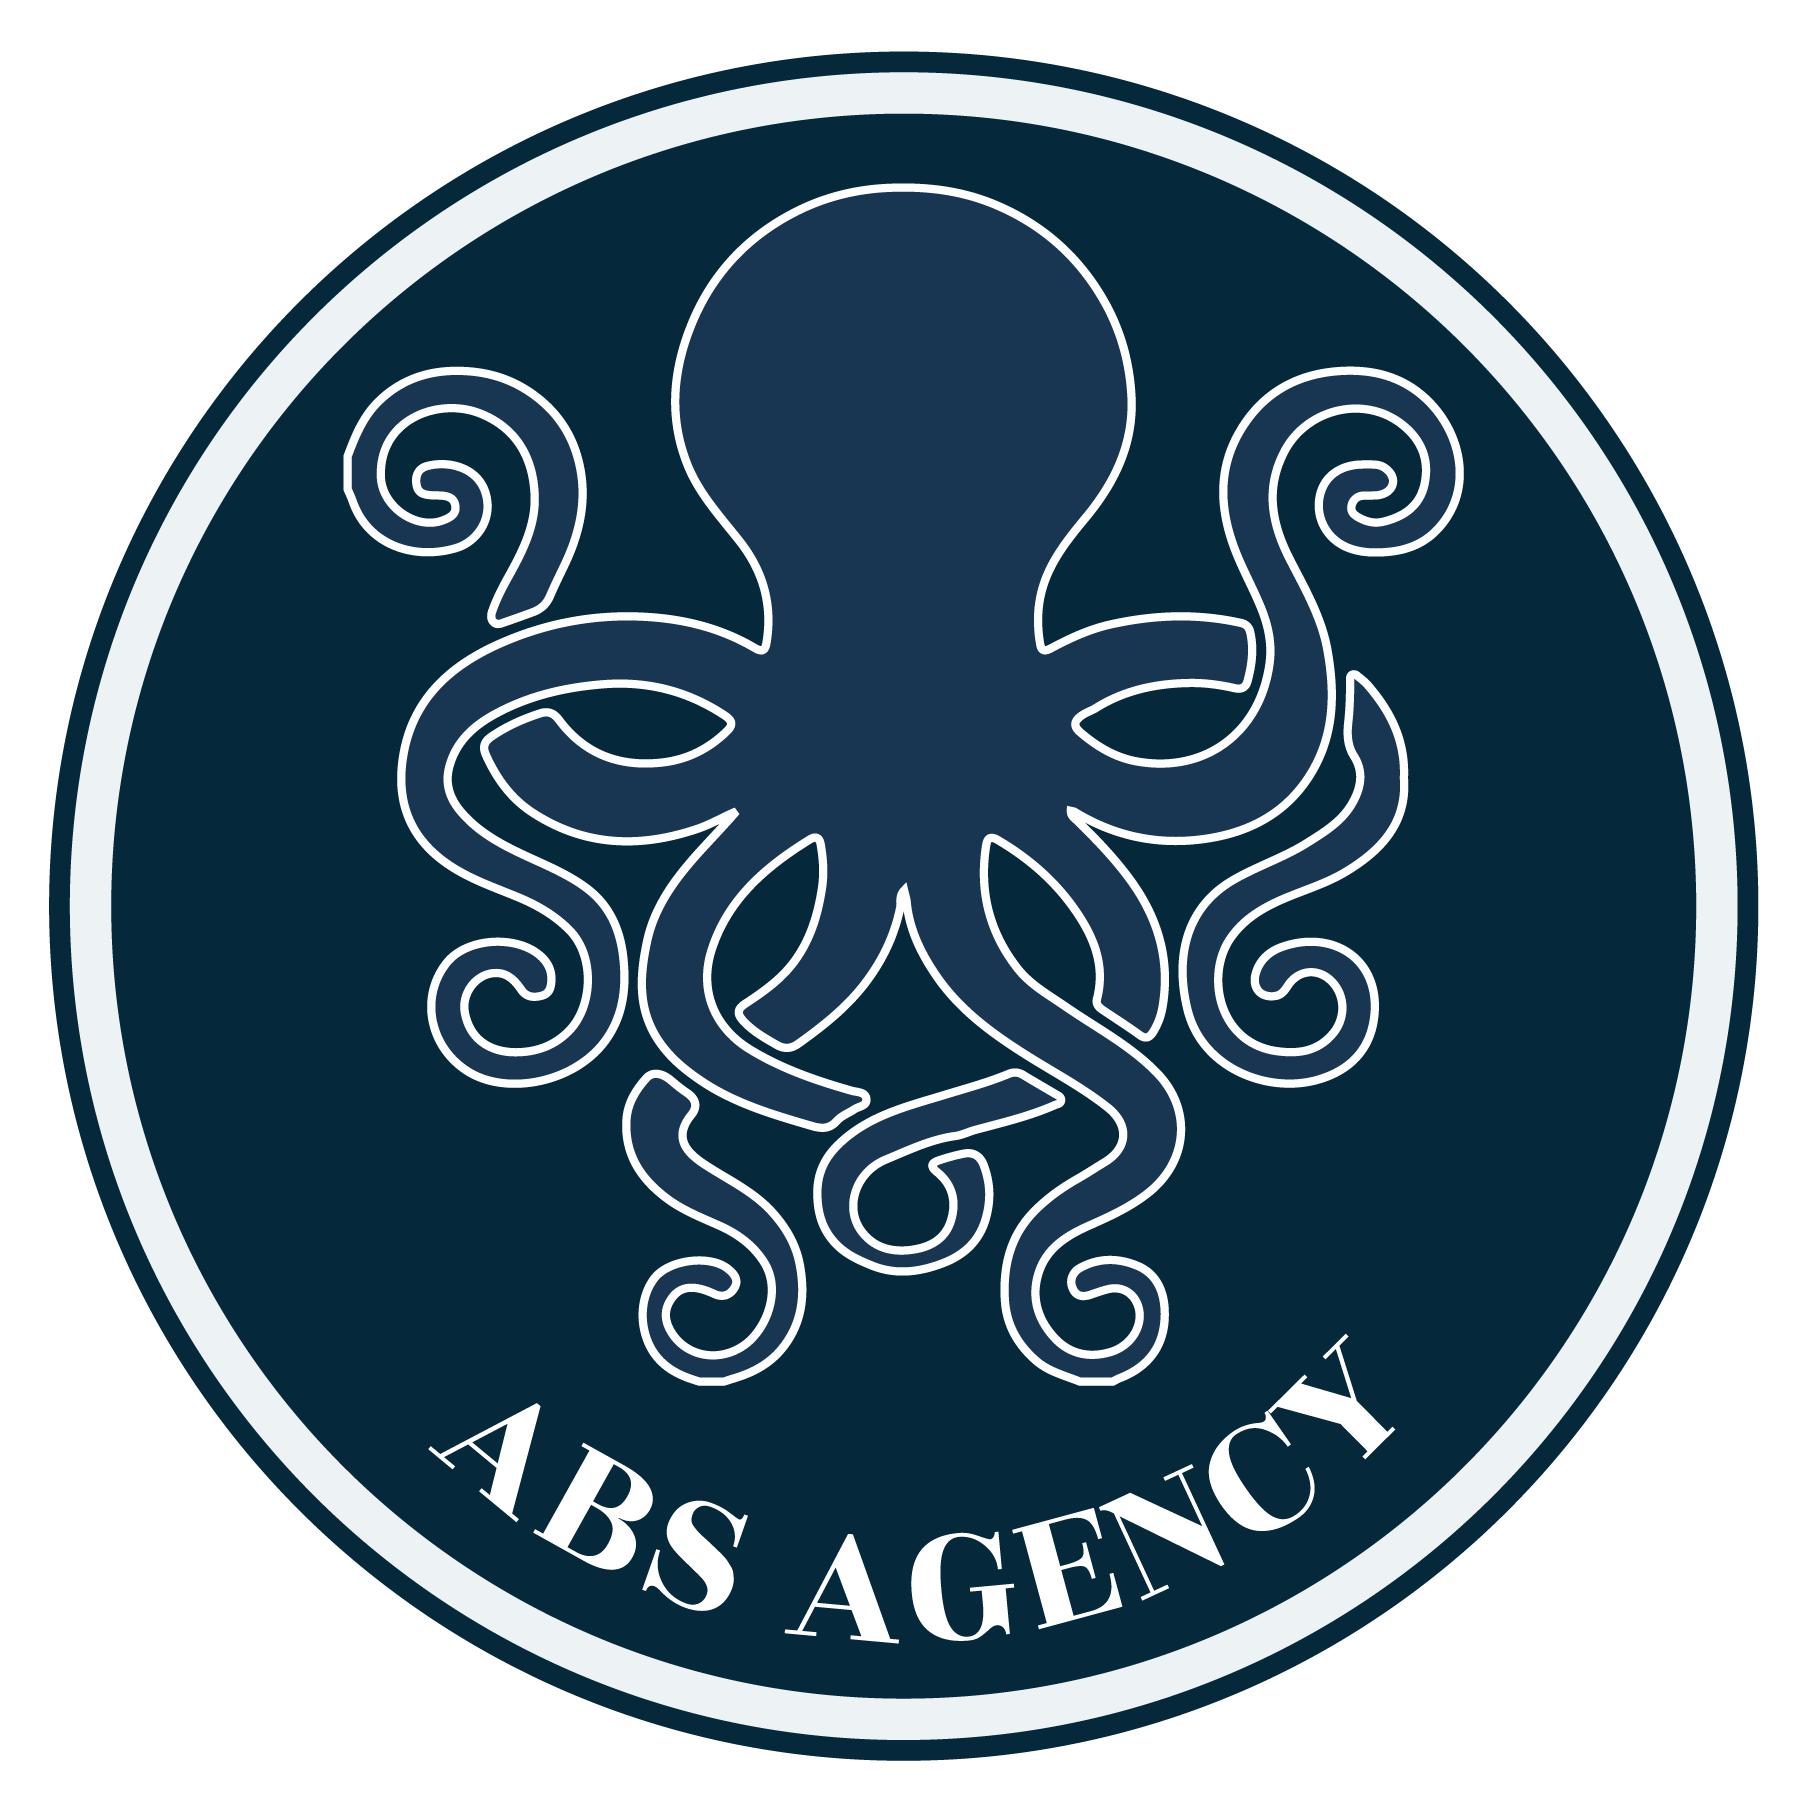 ABS-Agency